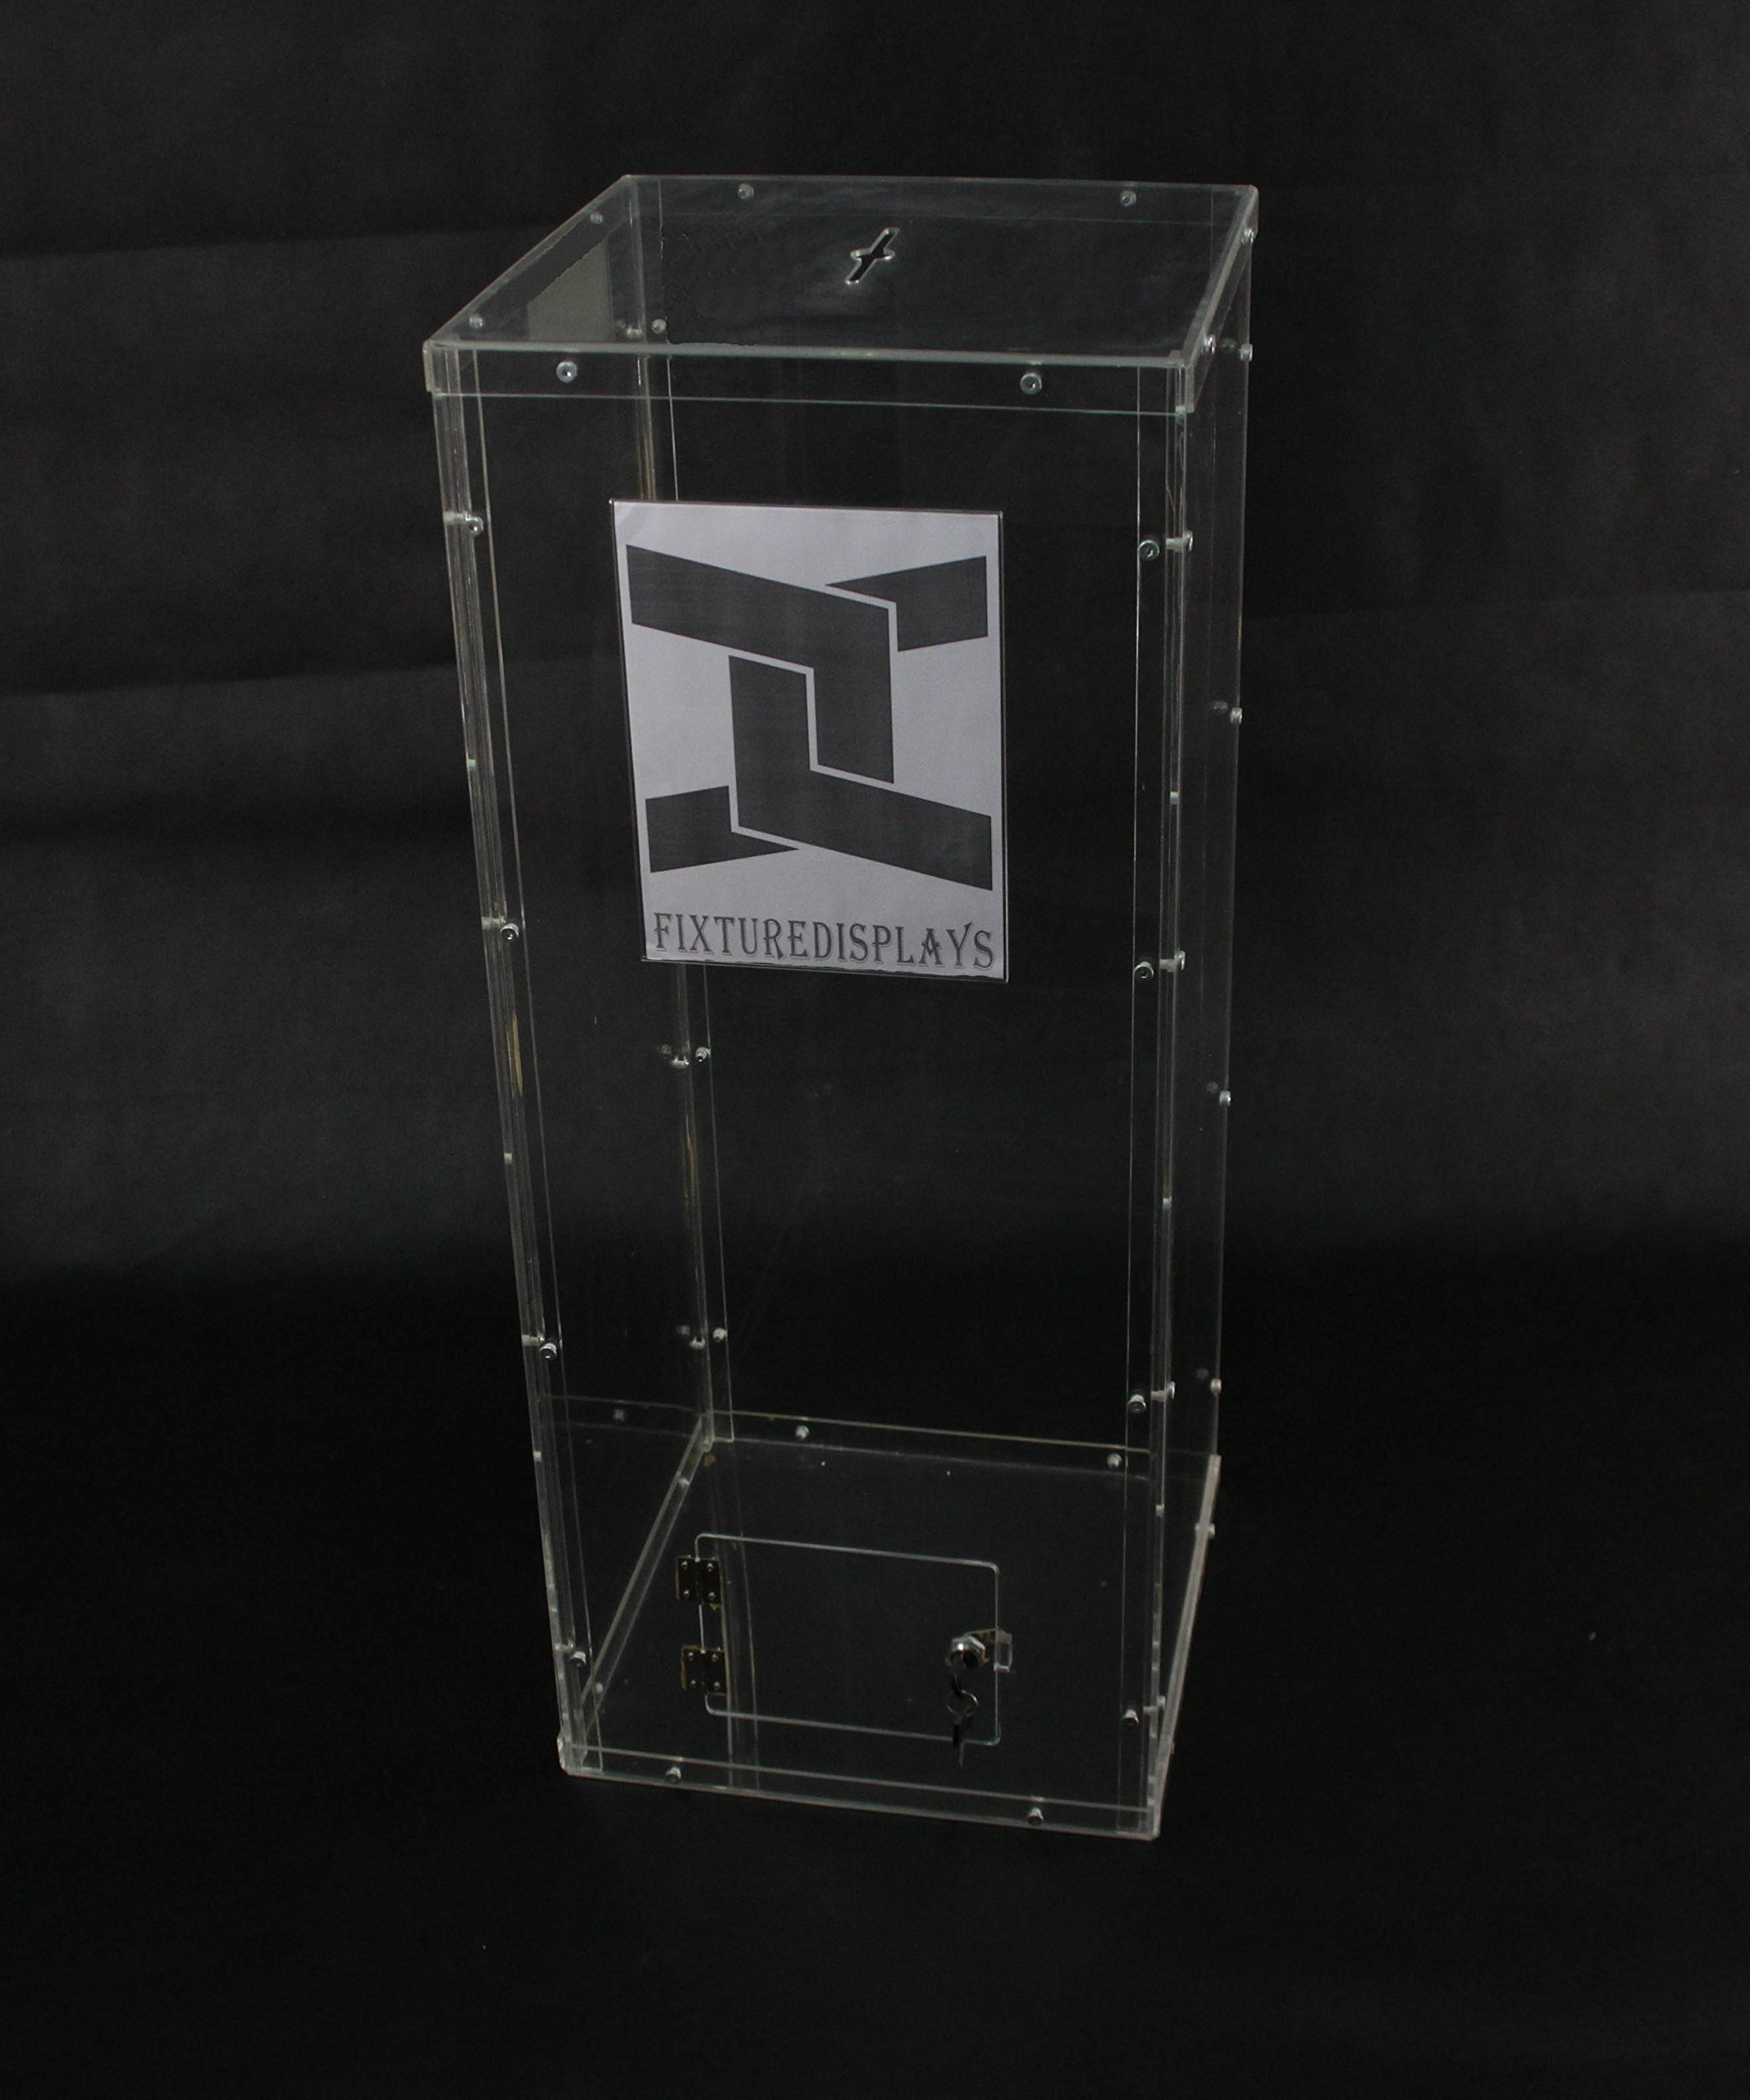 Fixture Displays Clear Plexiglass Acrylic Lucite Donation Box,Fund Raising Stand Display with Sign Holder 13192+12065